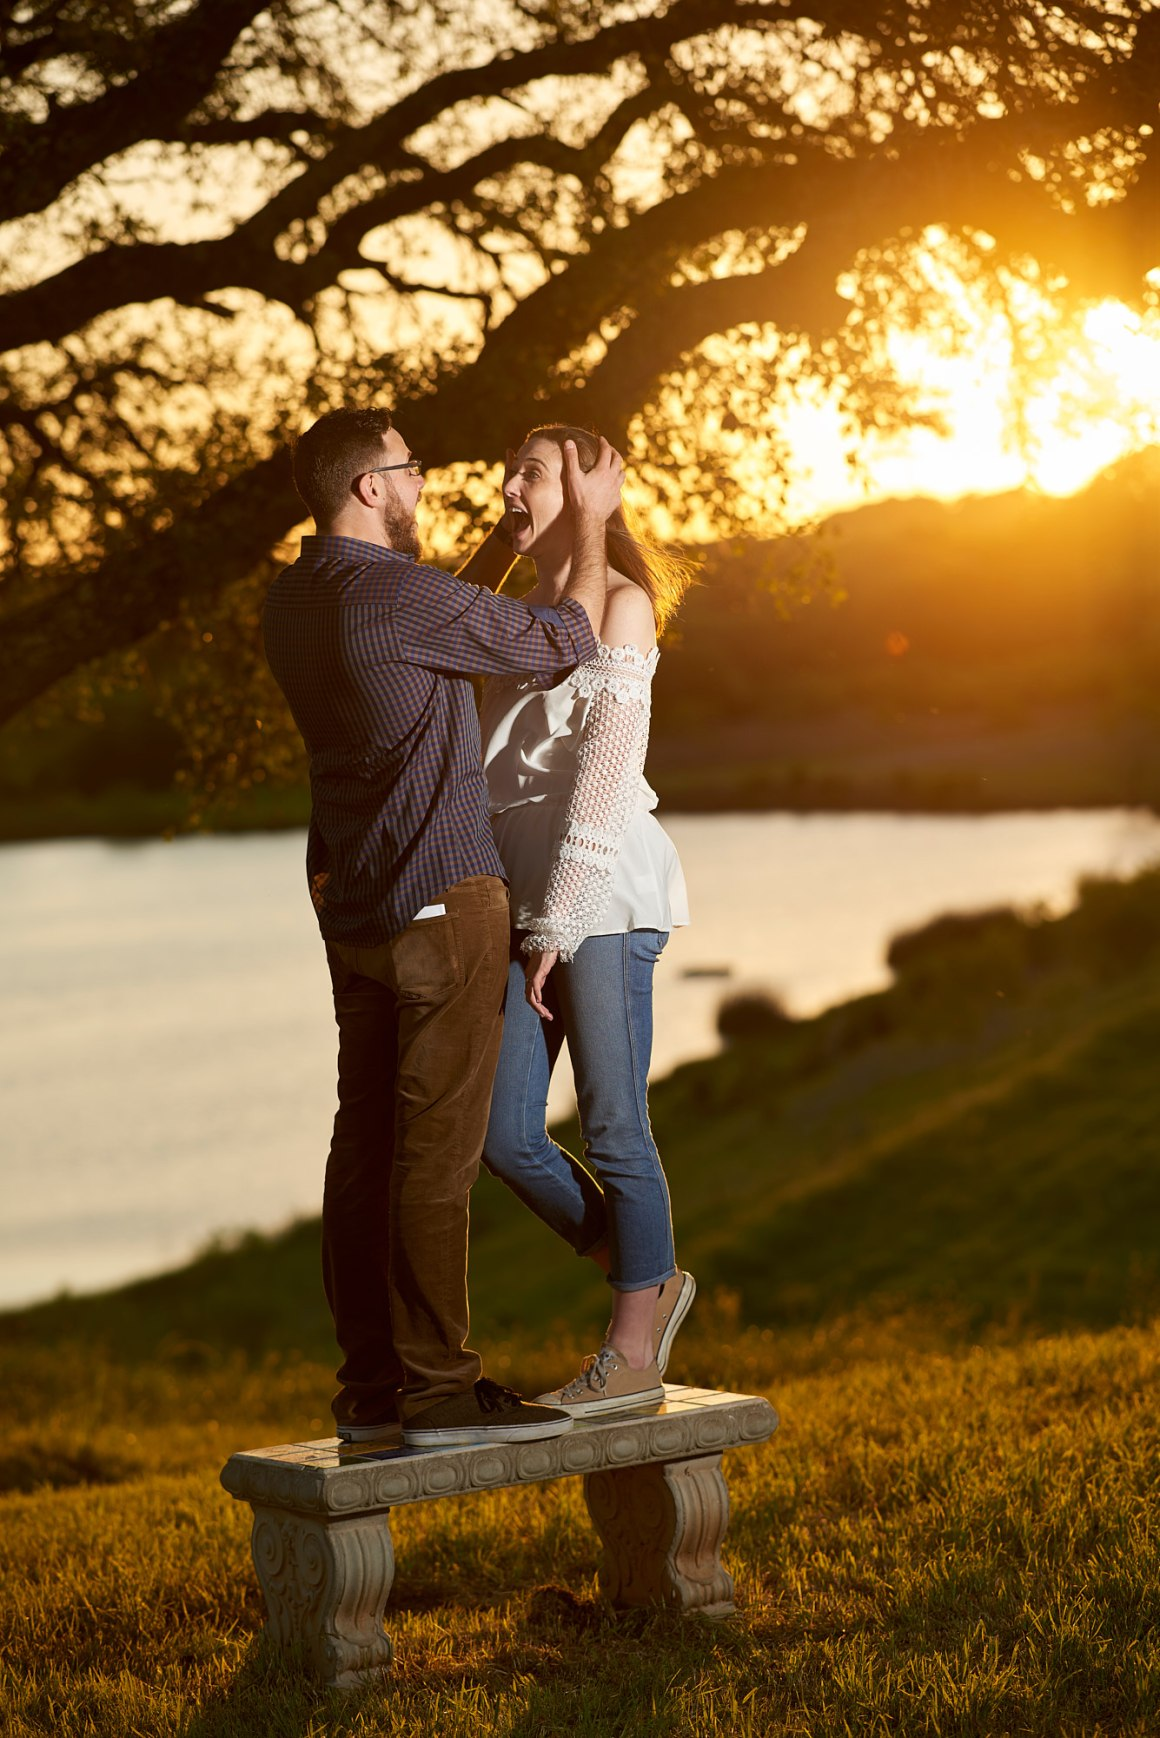 Lake Sunset Engagement - Waco DIY Wedding - Temple Camp Wedding - Hallie and Jonathan - Green Family Camp - Blue Bonnet Wedding